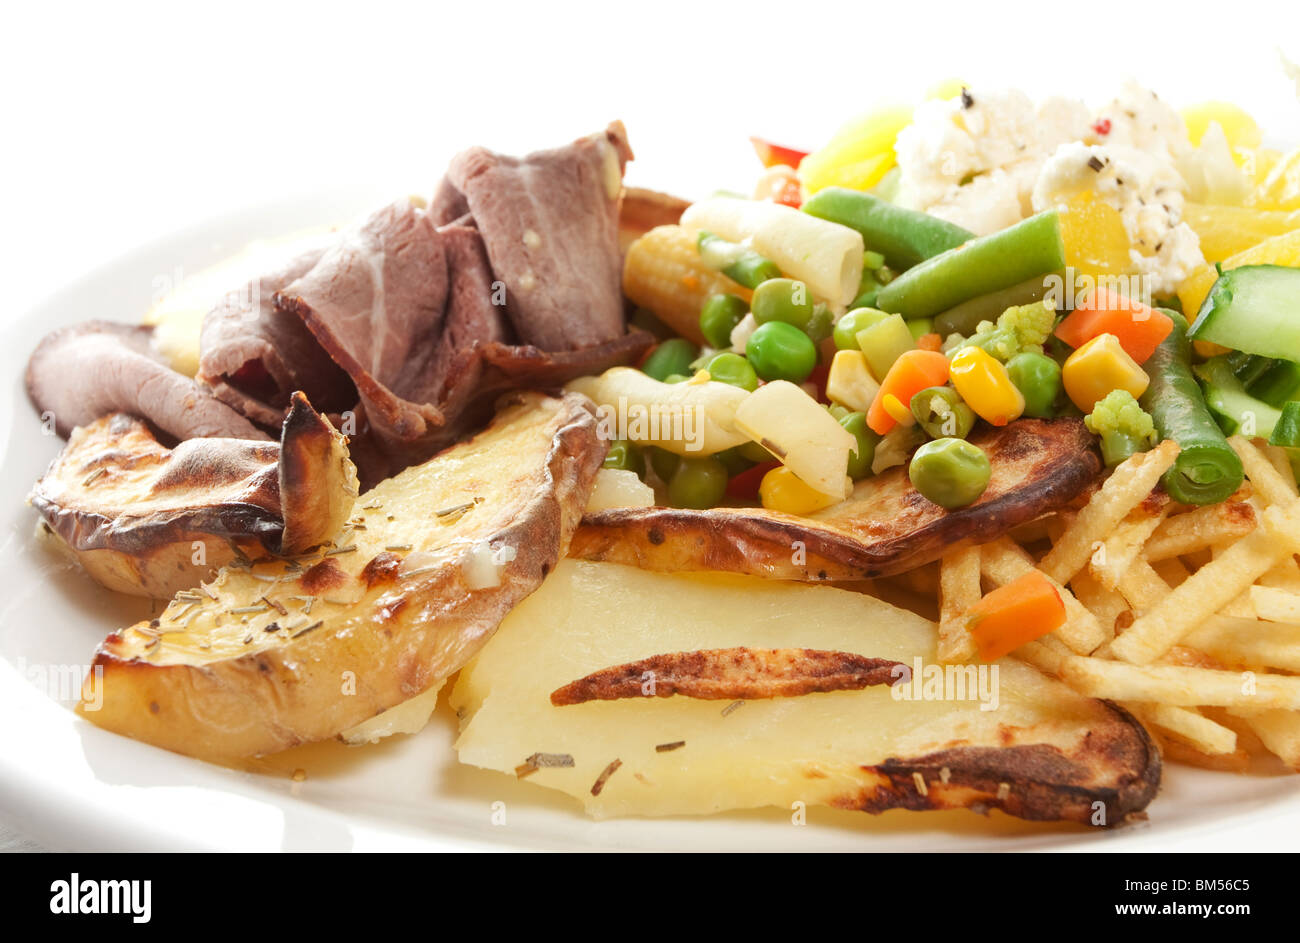 Roast beef with salad, potatoes and bernaise sauce isolated on white. - Stock Image